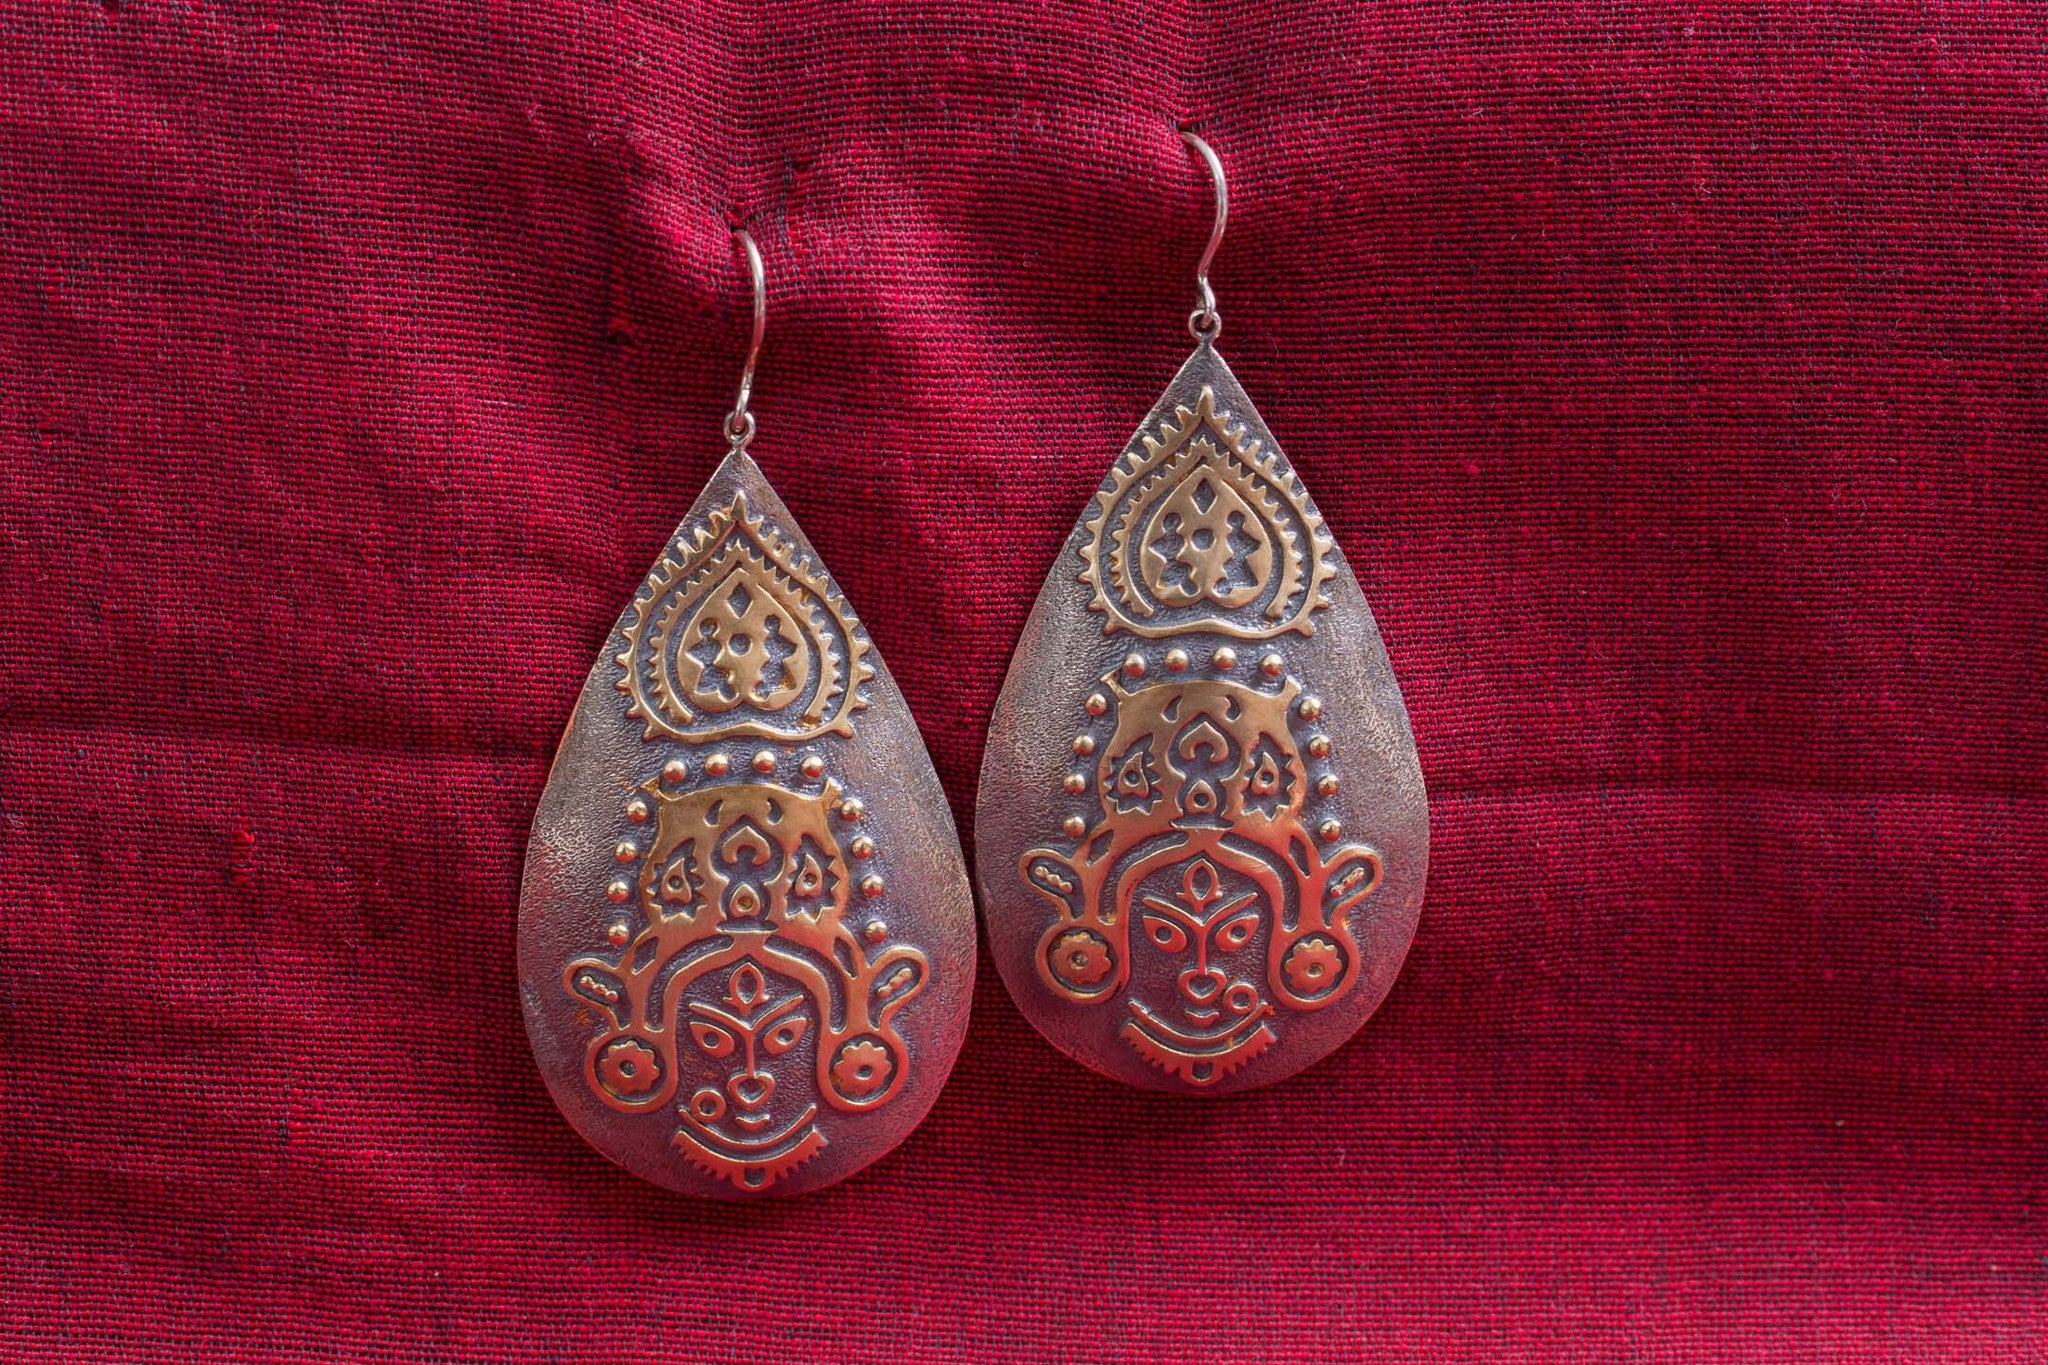 20a520-silver-gold-plated-amrapali-earrings-two-tone-raised-design-woman